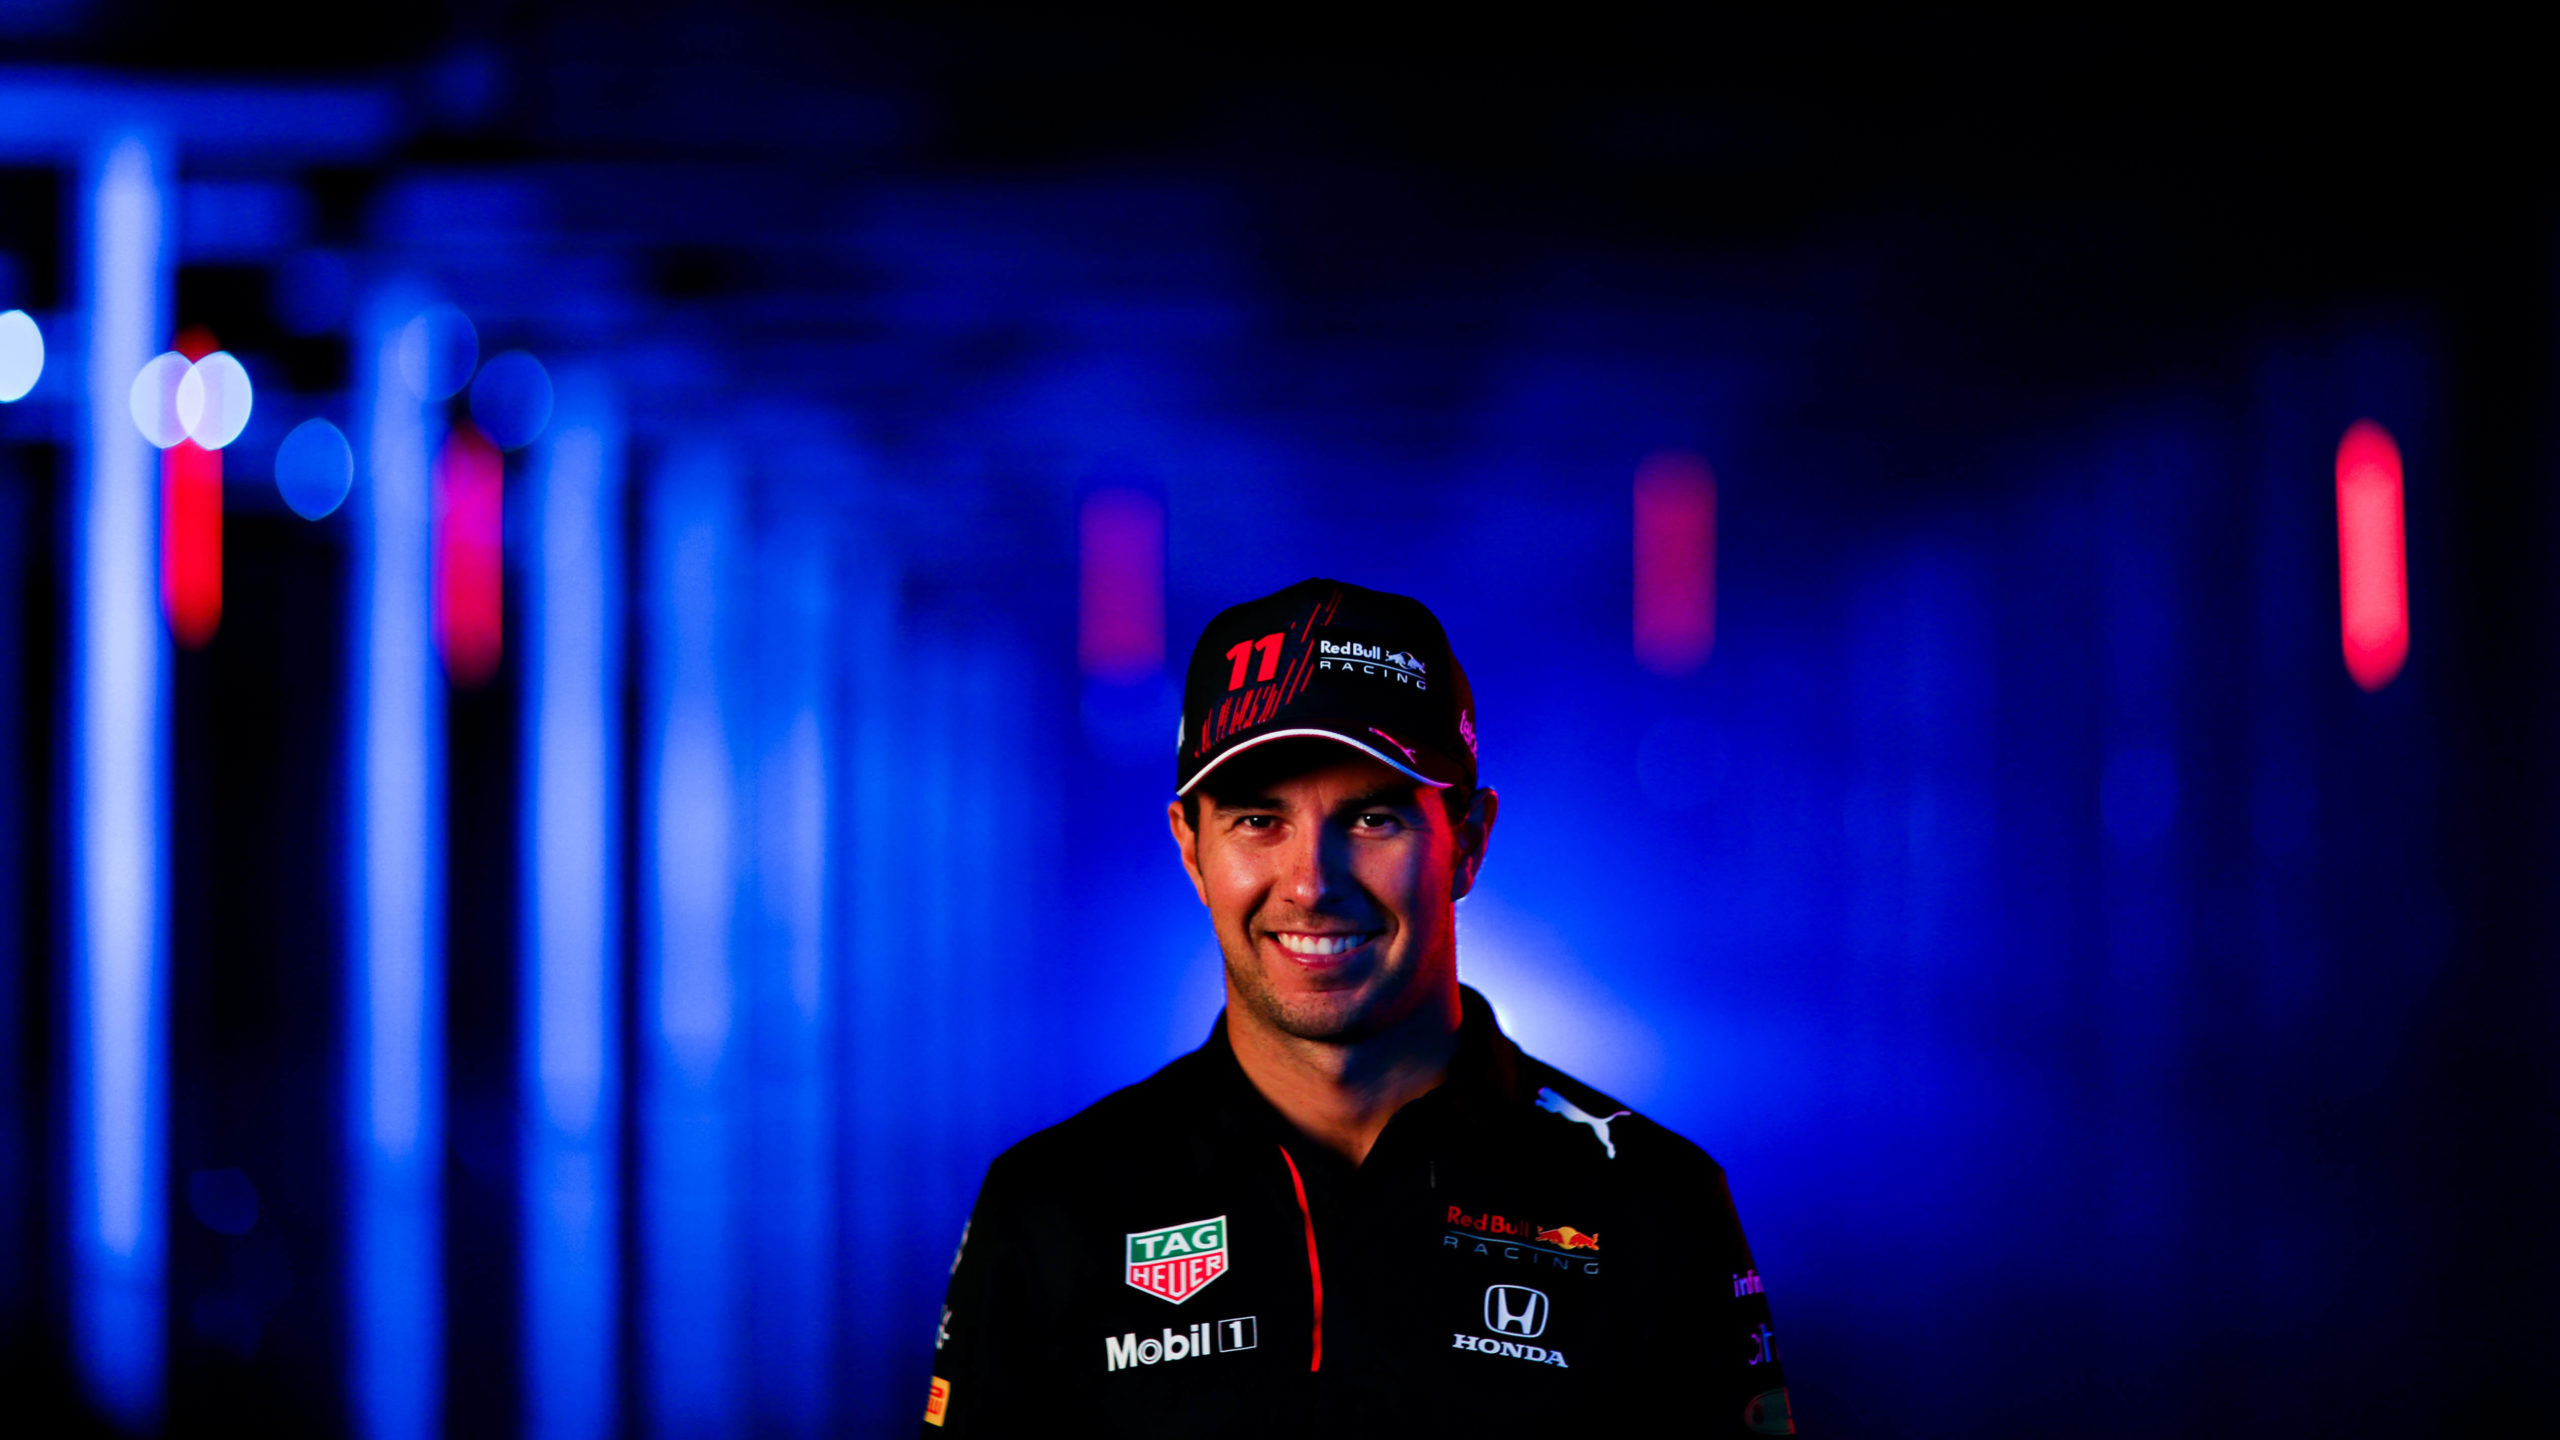 Sergio Perez targets F1 title using lessons from 'shocking' McLaren season